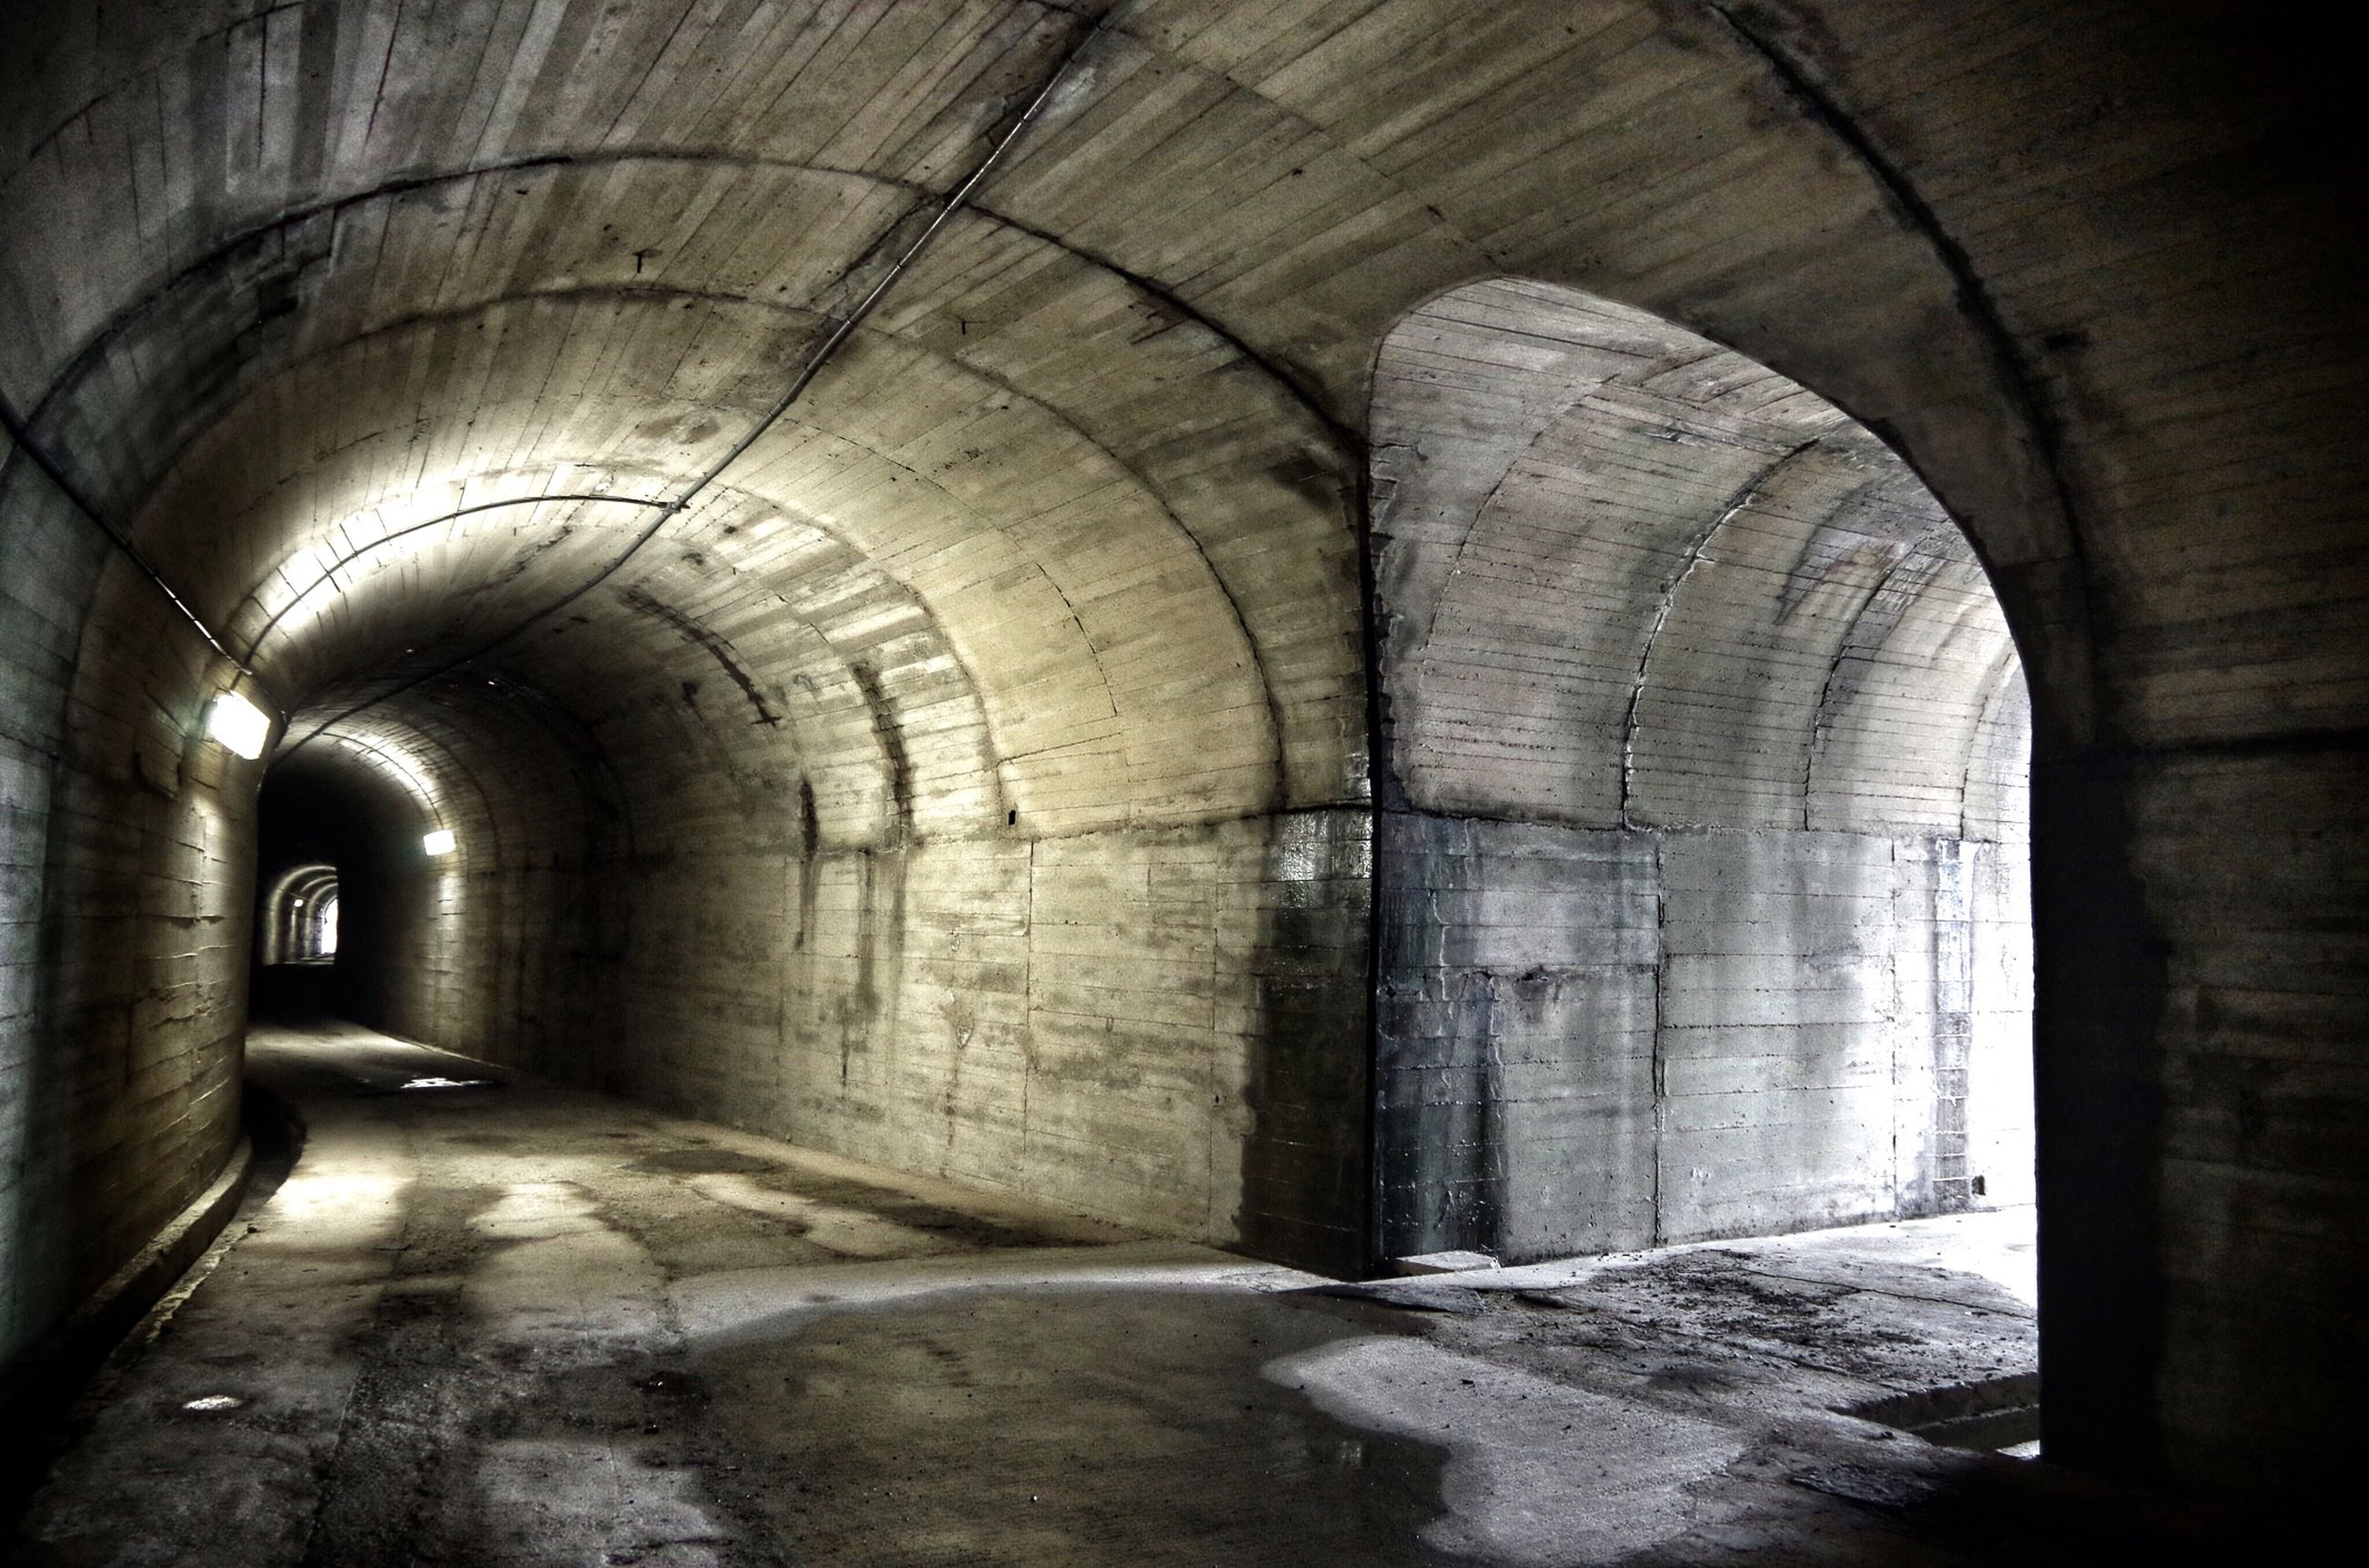 indoors, arch, architecture, built structure, interior, old, ceiling, tunnel, the way forward, corridor, archway, history, abandoned, architectural column, building, wall - building feature, diminishing perspective, no people, historic, arched